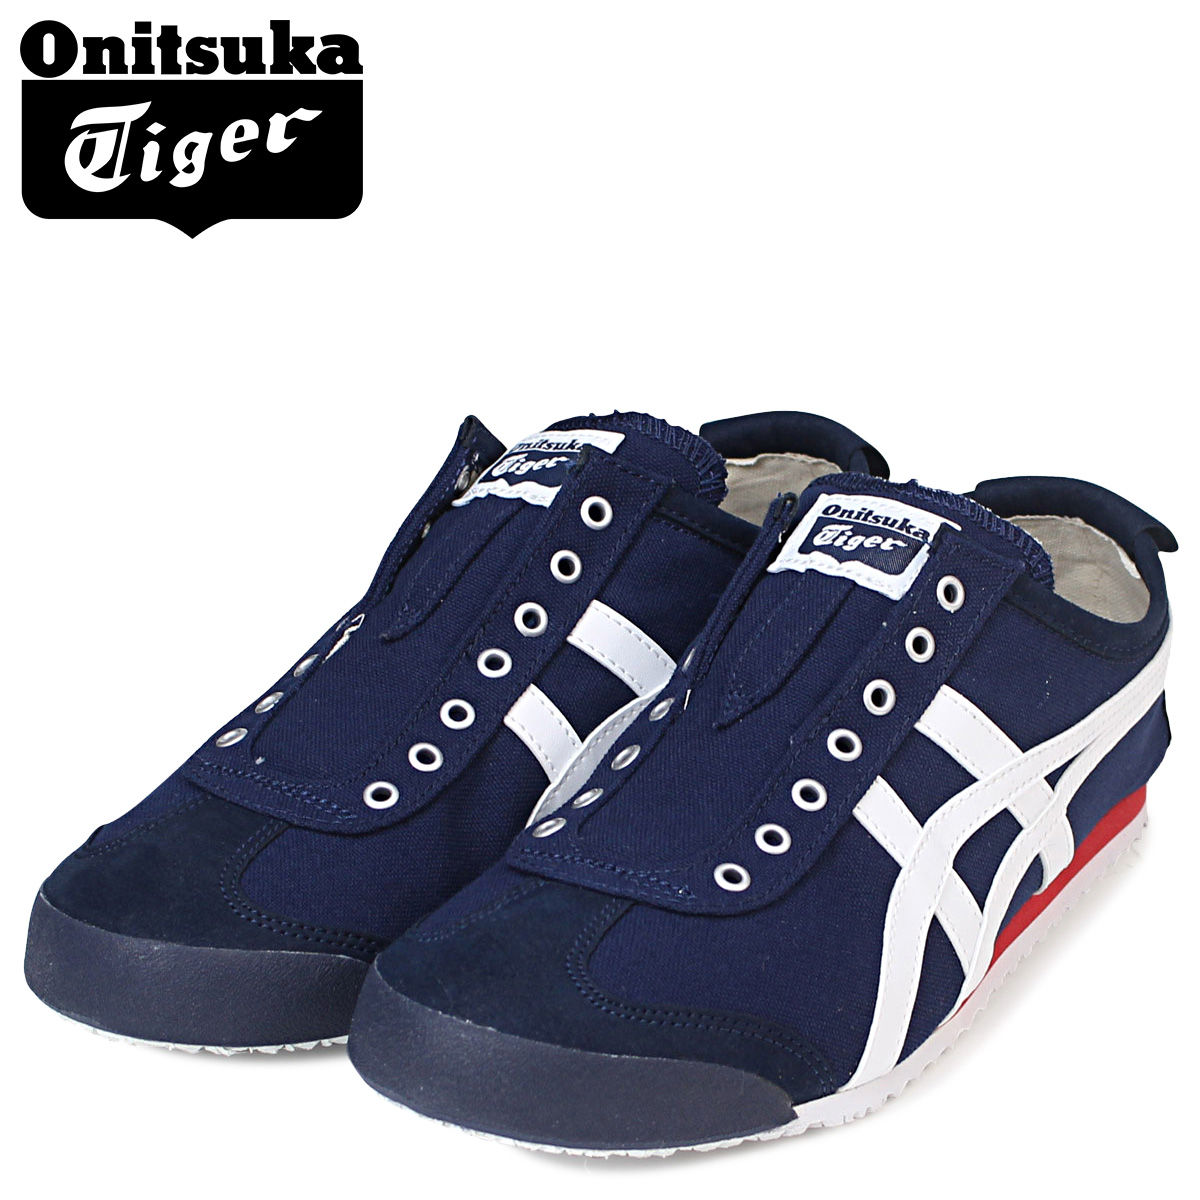 save off 2c335 3dbf0 Onitsuka Tiger MEXICO 66 SLIP ON Onitsuka tiger Mexico 66 slip-ons men gap  Dis sneakers D3K0N 5099 navy [8/1 reentry load] [197]